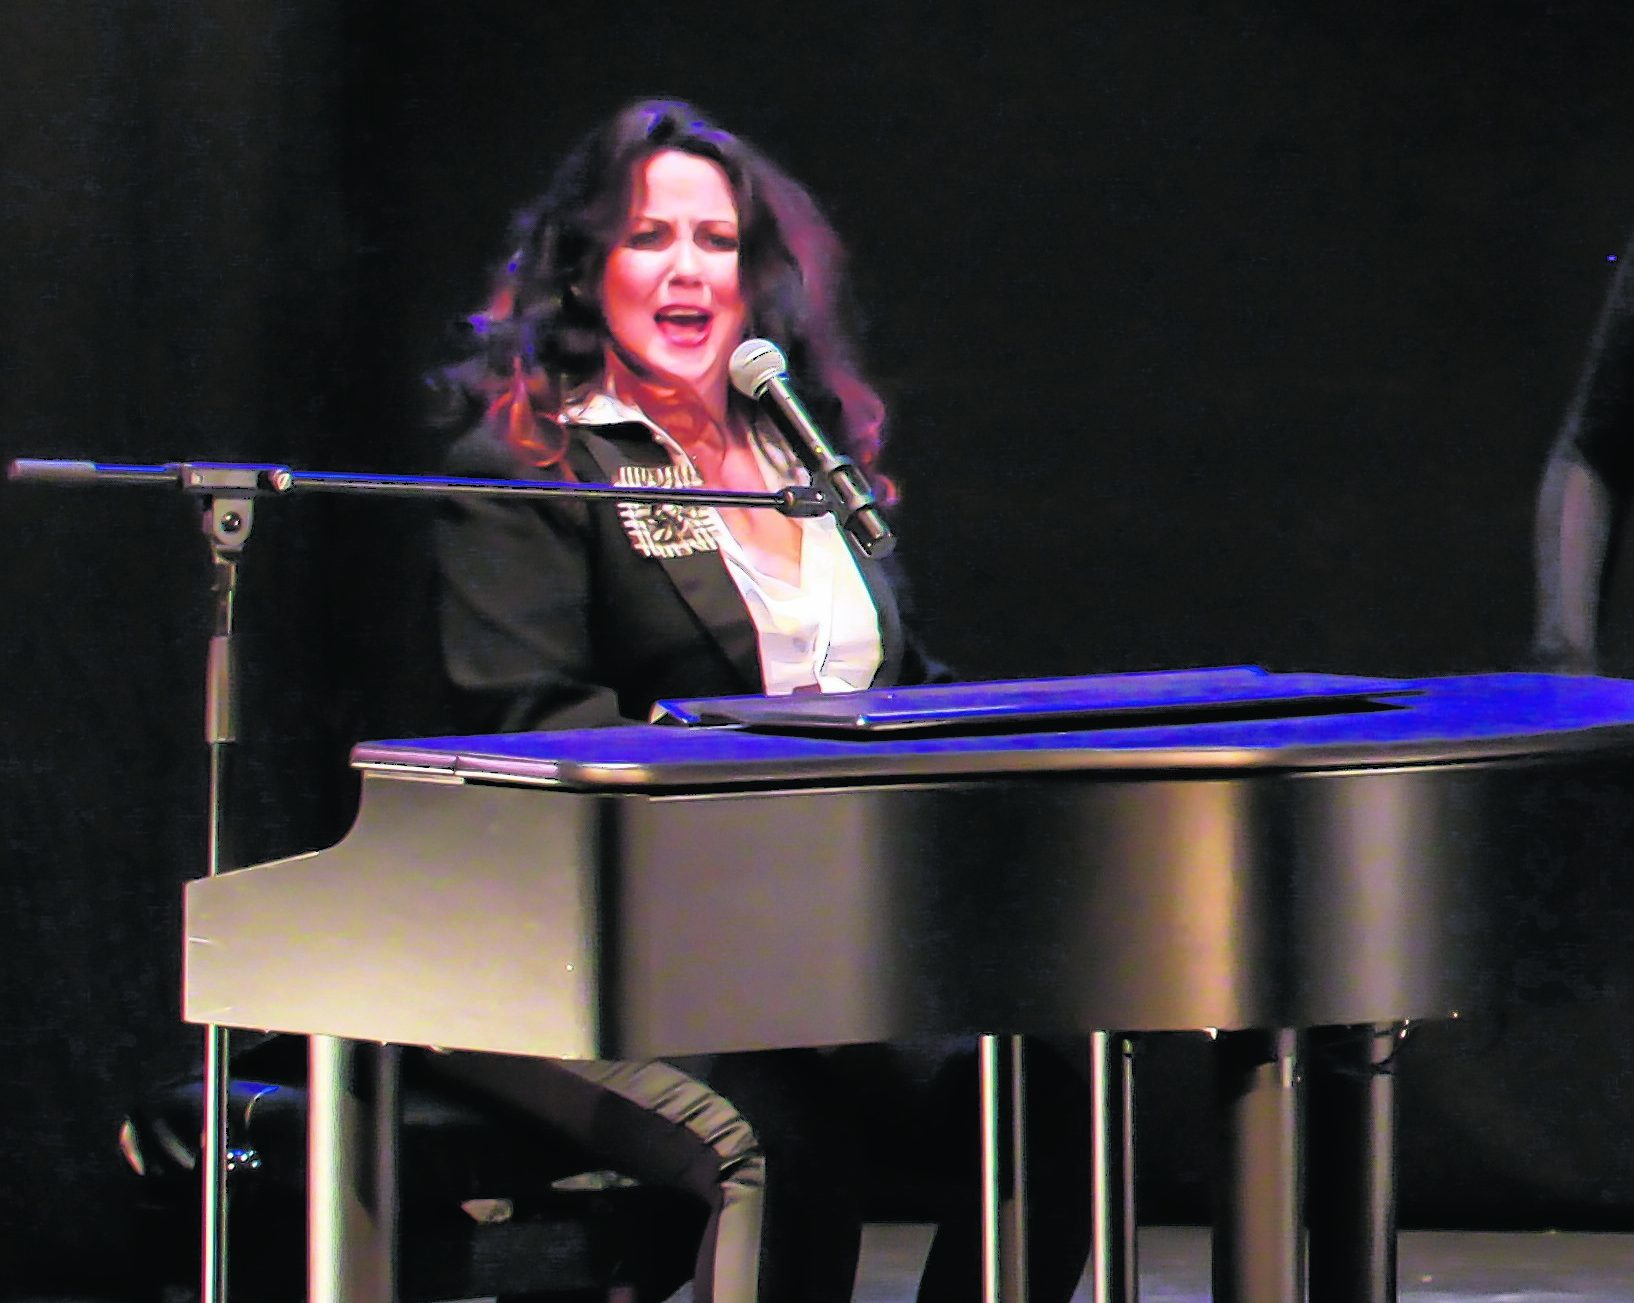 Tish Tindall developed the idea for Robert Burns The Musical with David Gest